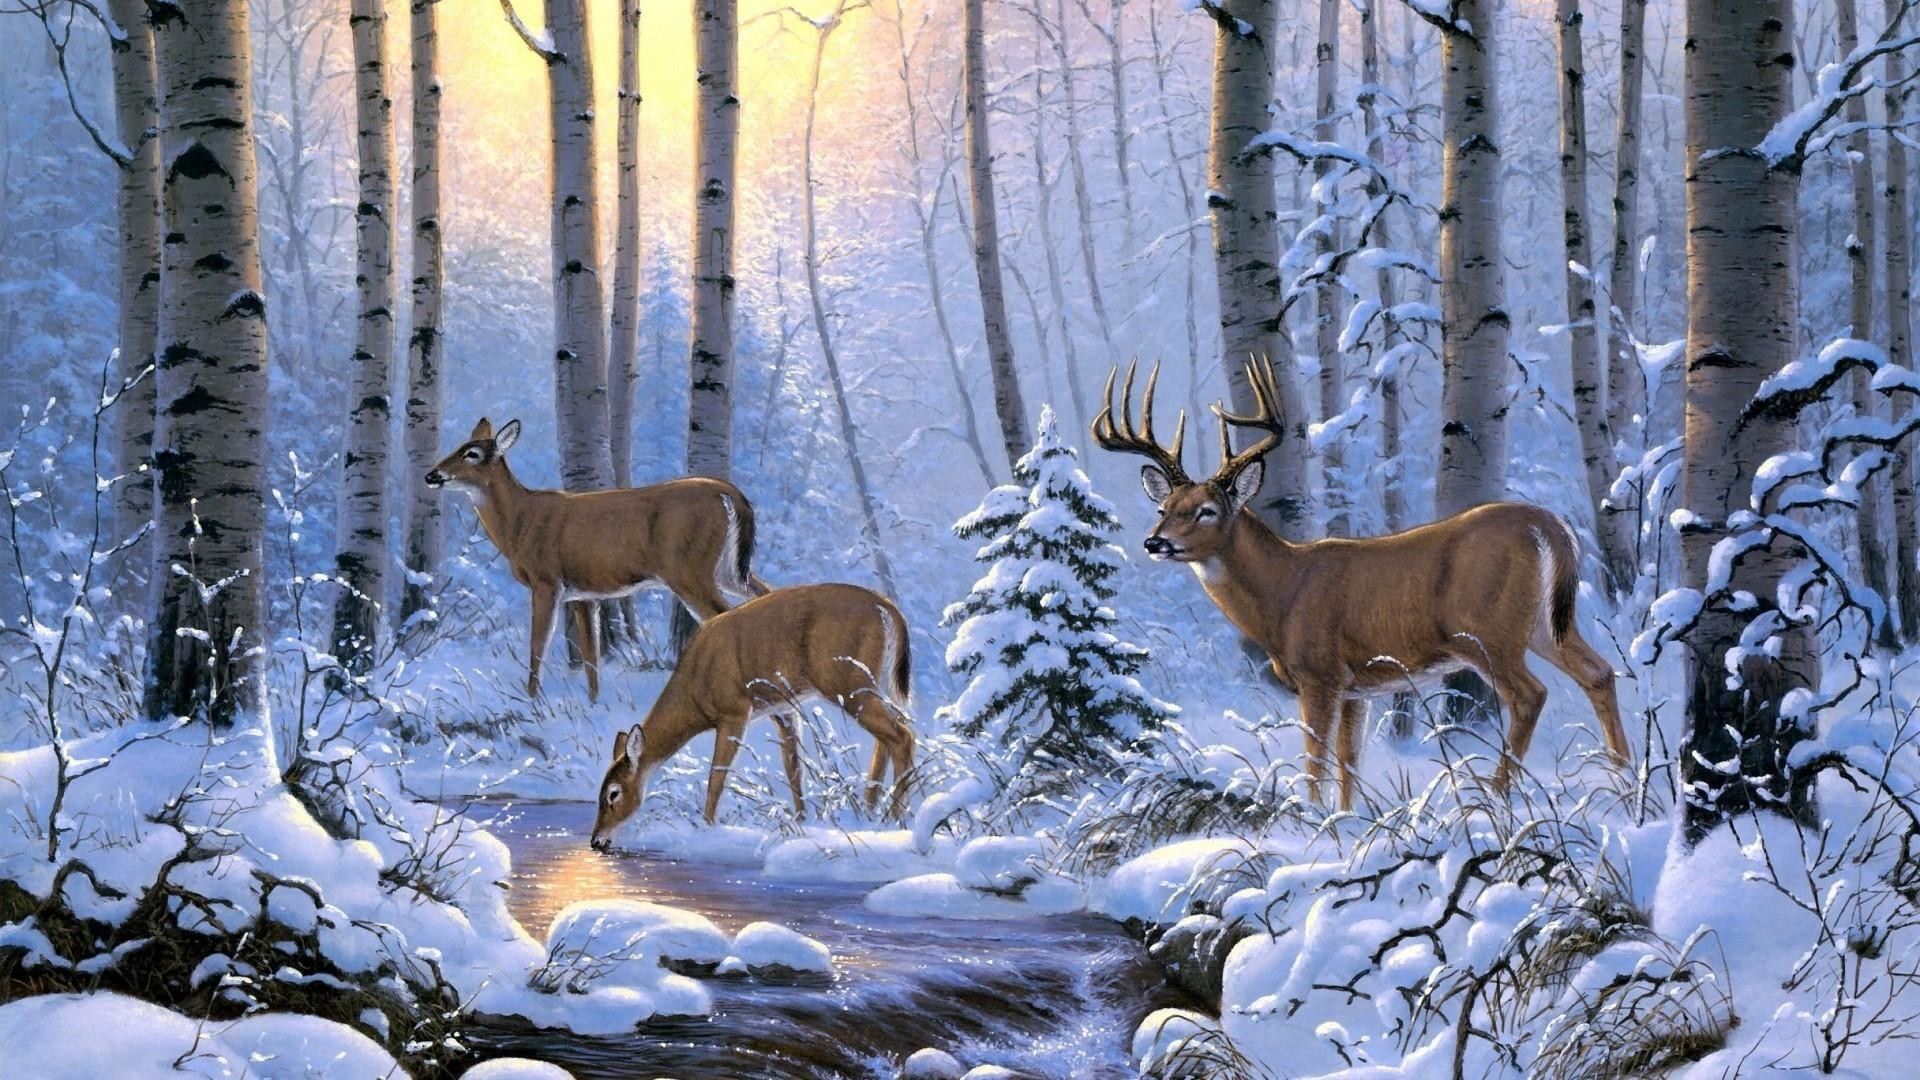 Res: 1920x1080, Whitetail Deer In Snow - Painting Art Wallpaper   Wallpaper Studio 10    Tens of thousands HD and UltraHD wallpapers for Android, Windows and Xbox